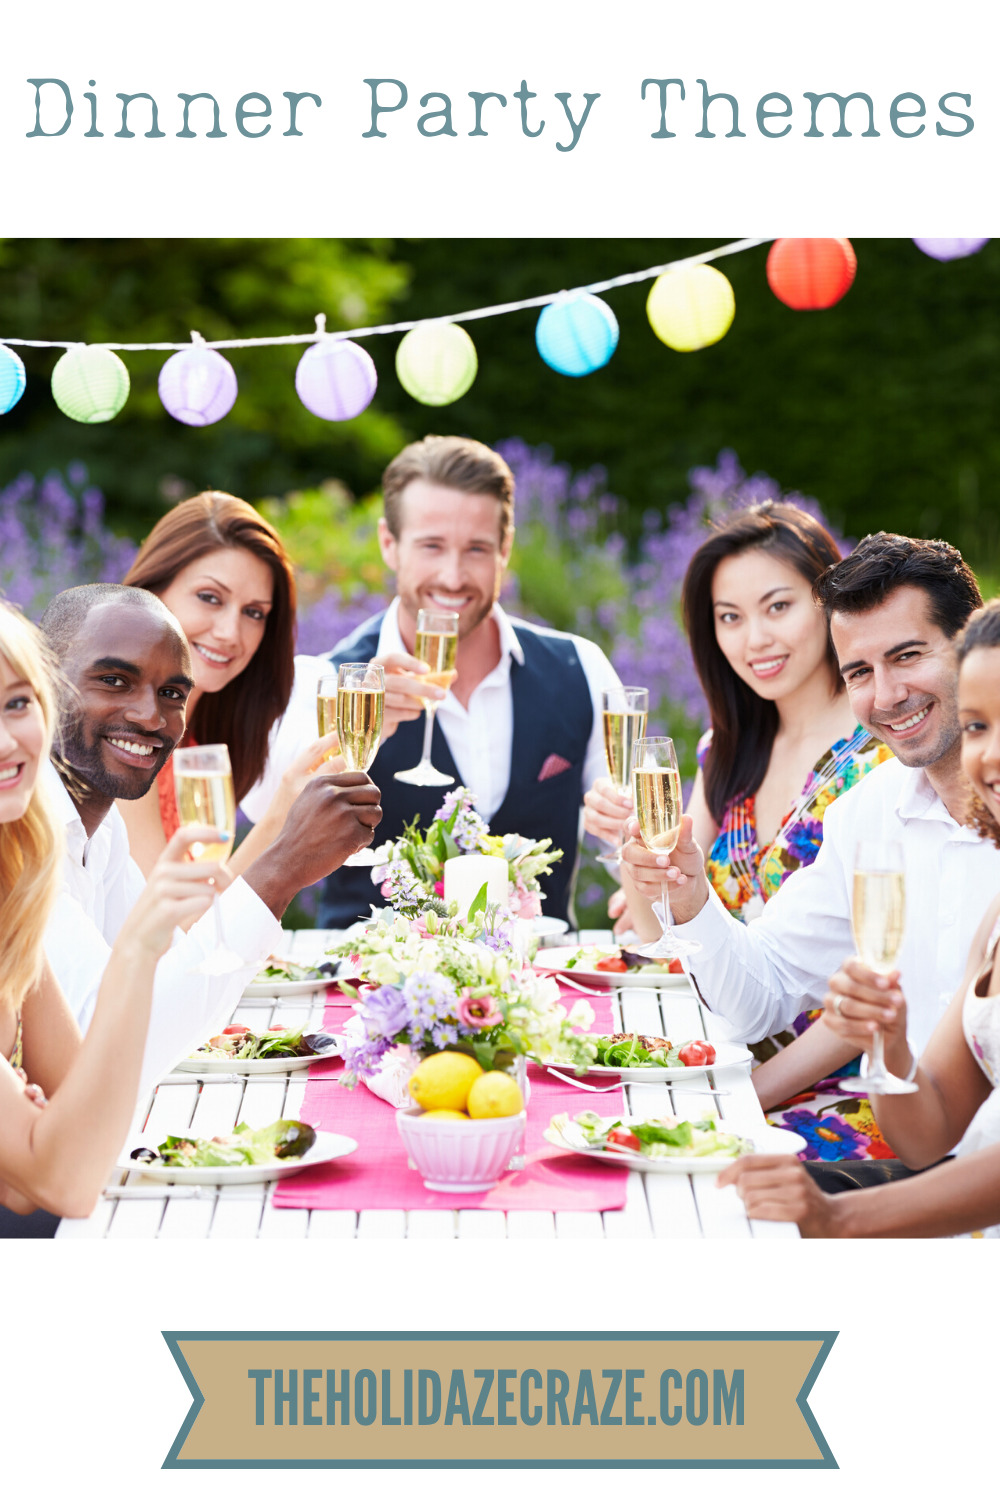 Dinner Party Themes Ideas Fun Celebration Theholidazecraze Com